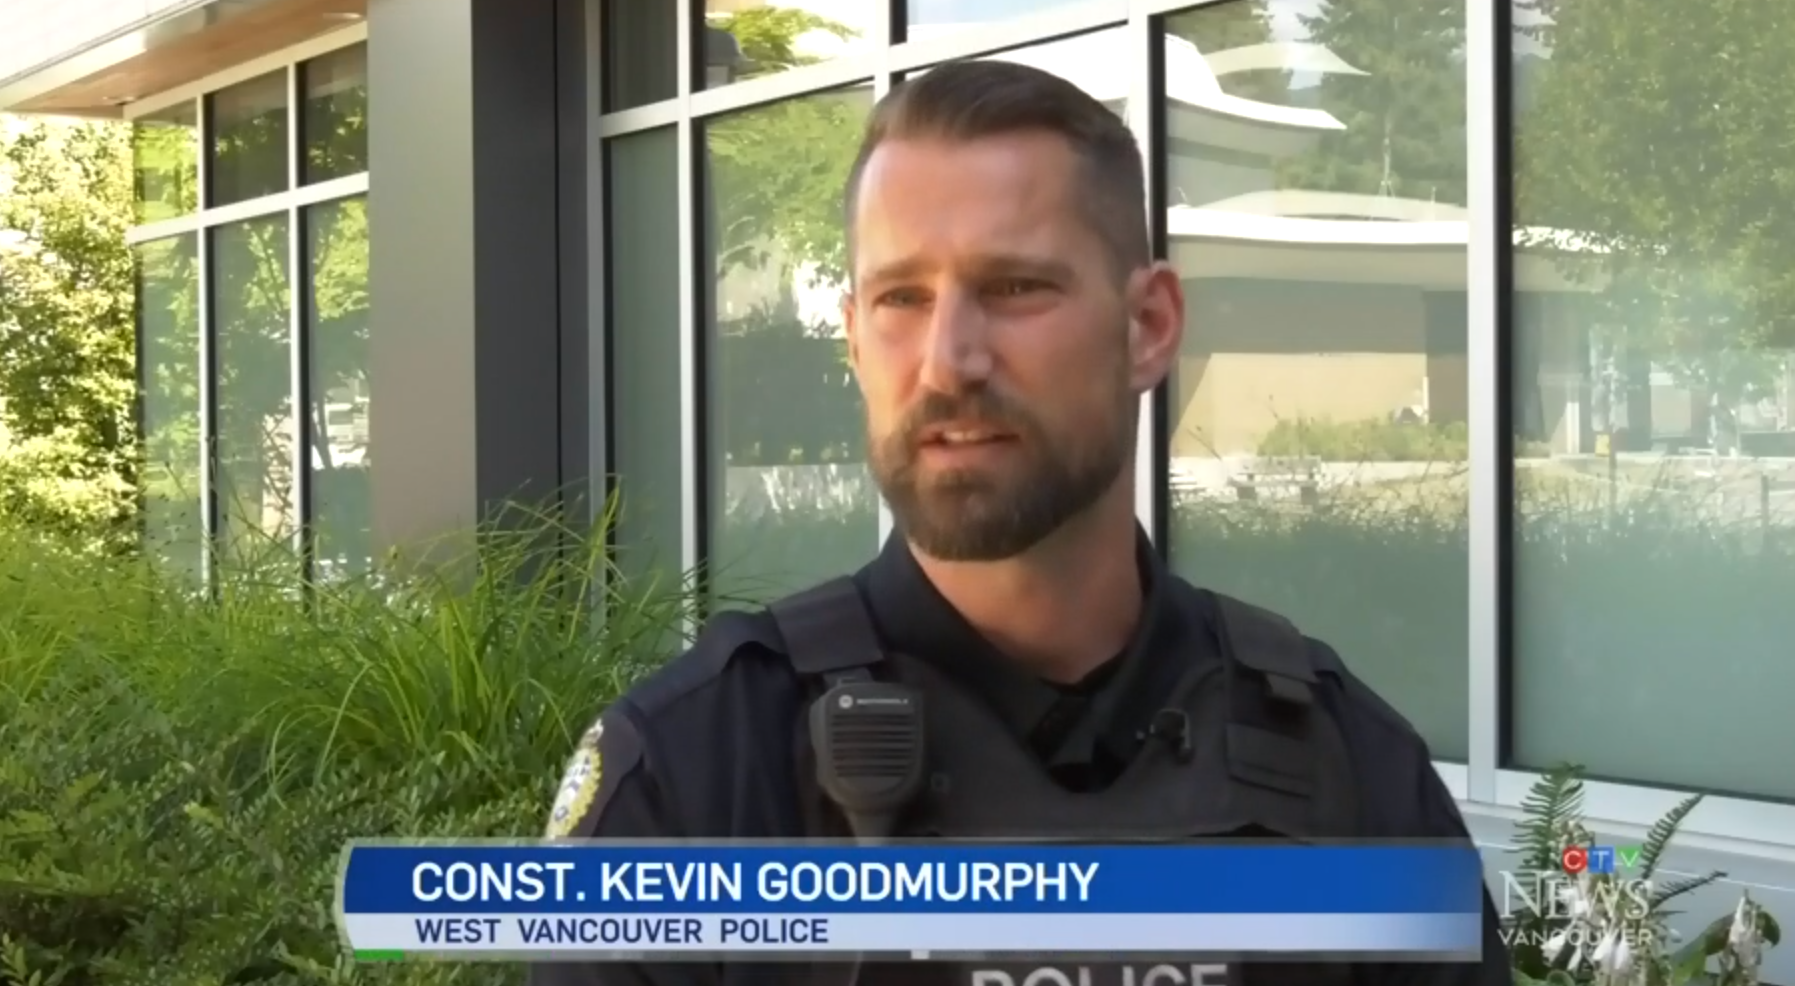 police constable kevin goodmurphy